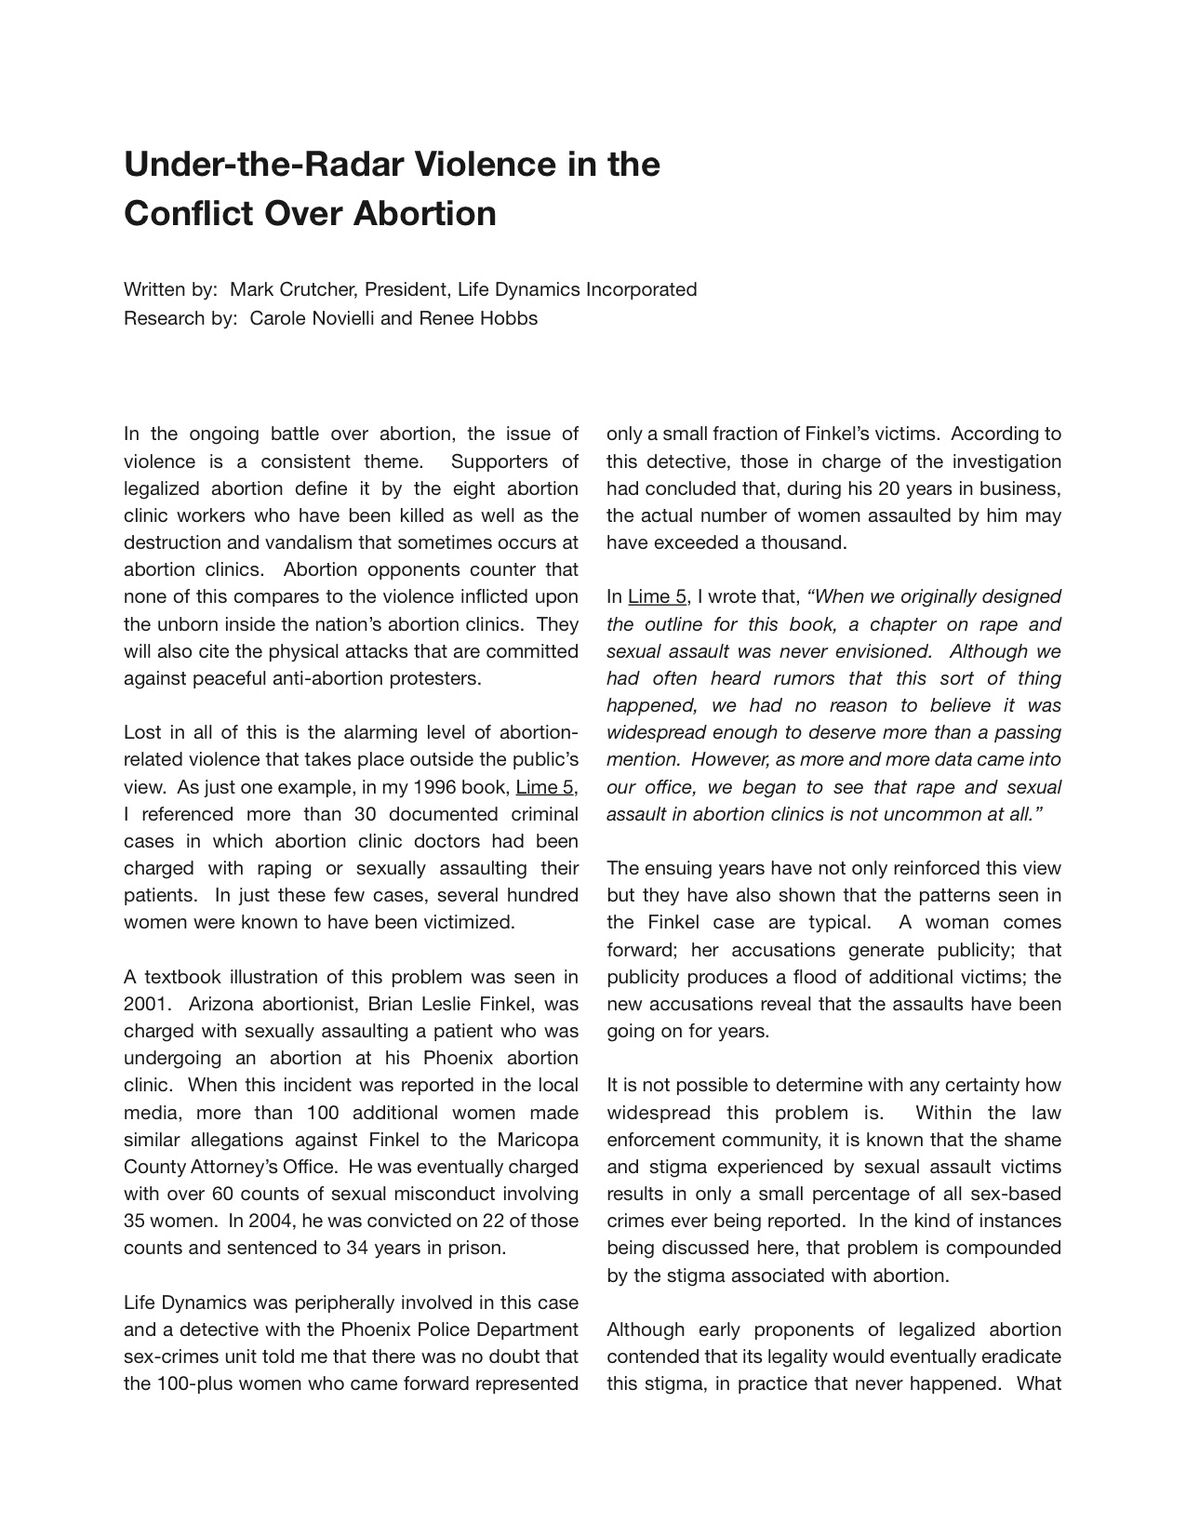 The Under the Radar Pro-Choice Violence in the Conflict Over Abortion - The Real War on Women